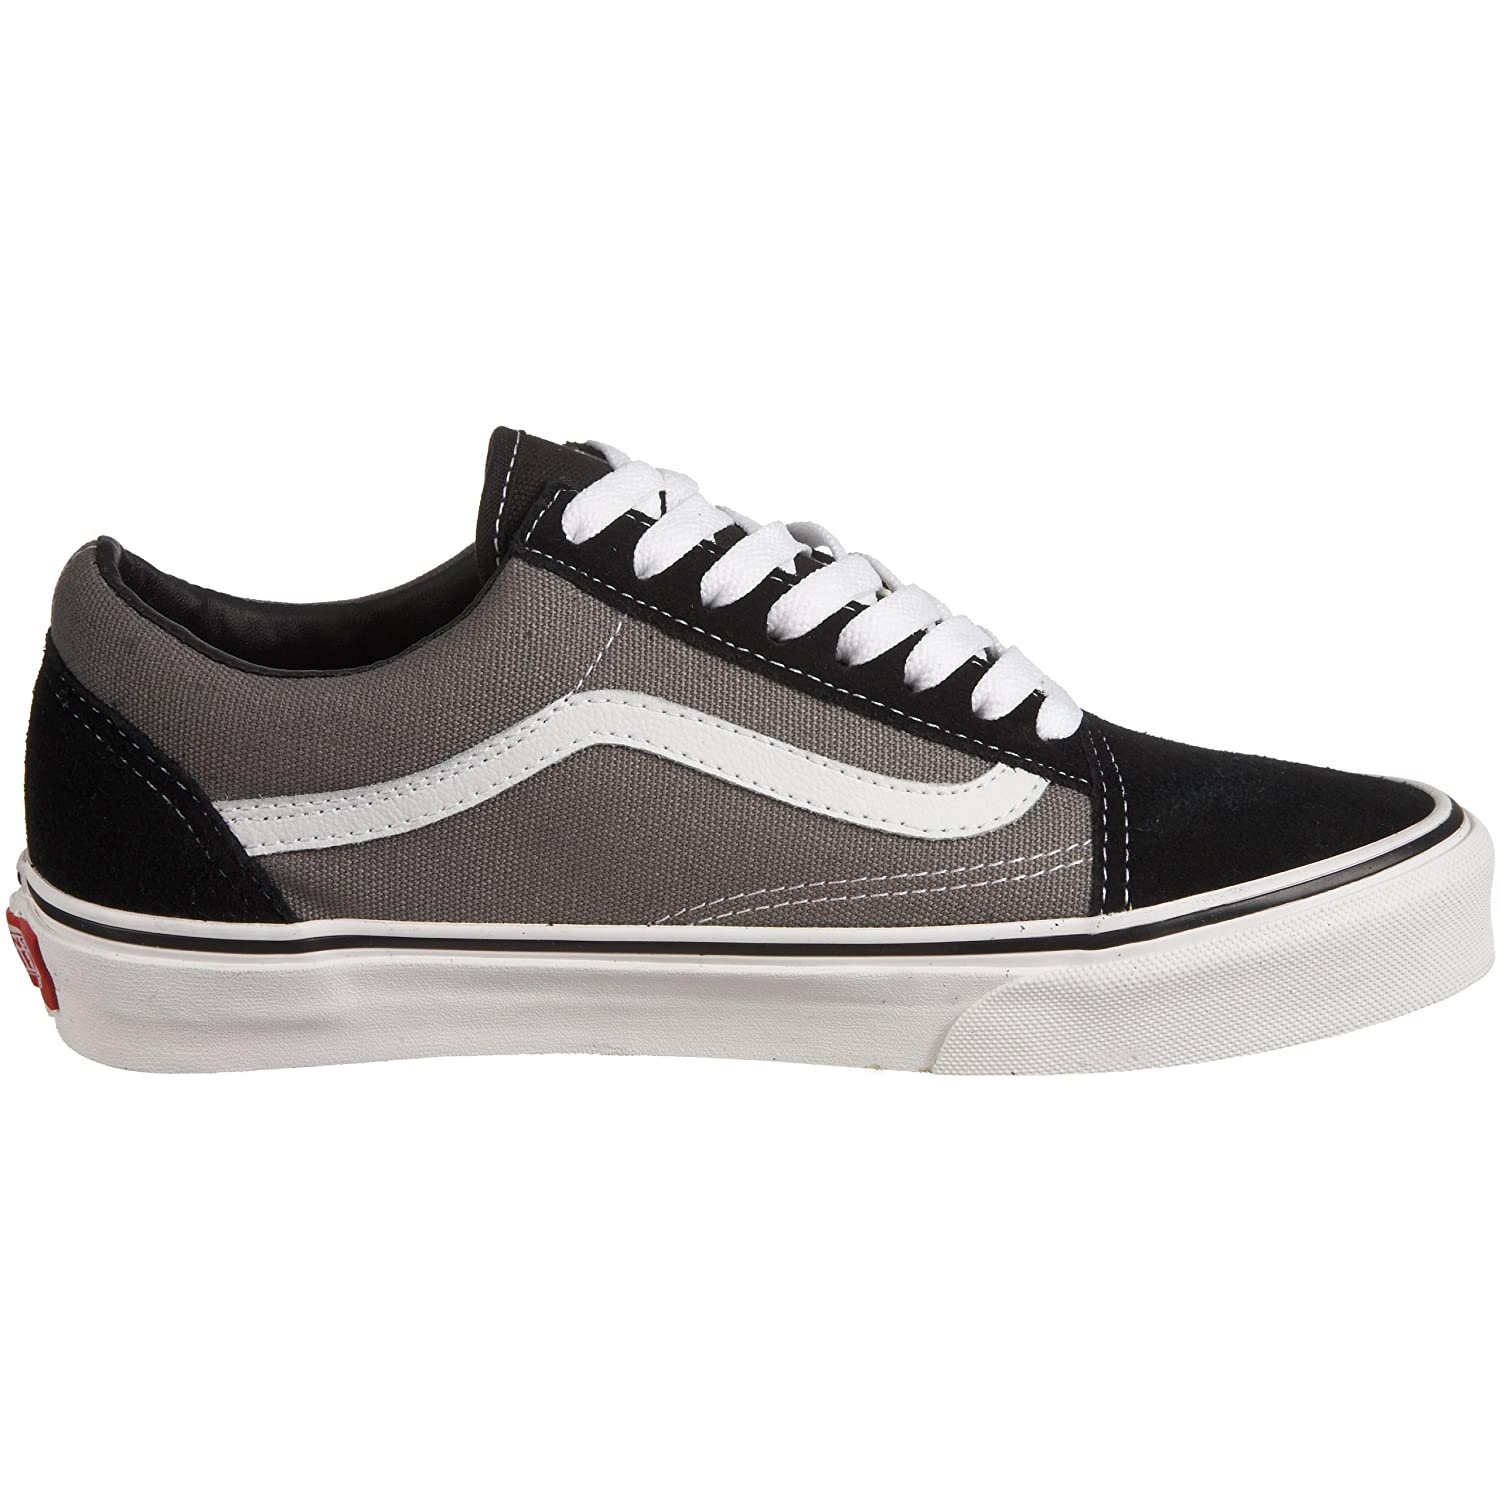 Vans Old Skool Svart Svart Amazon ciZV2w2XT